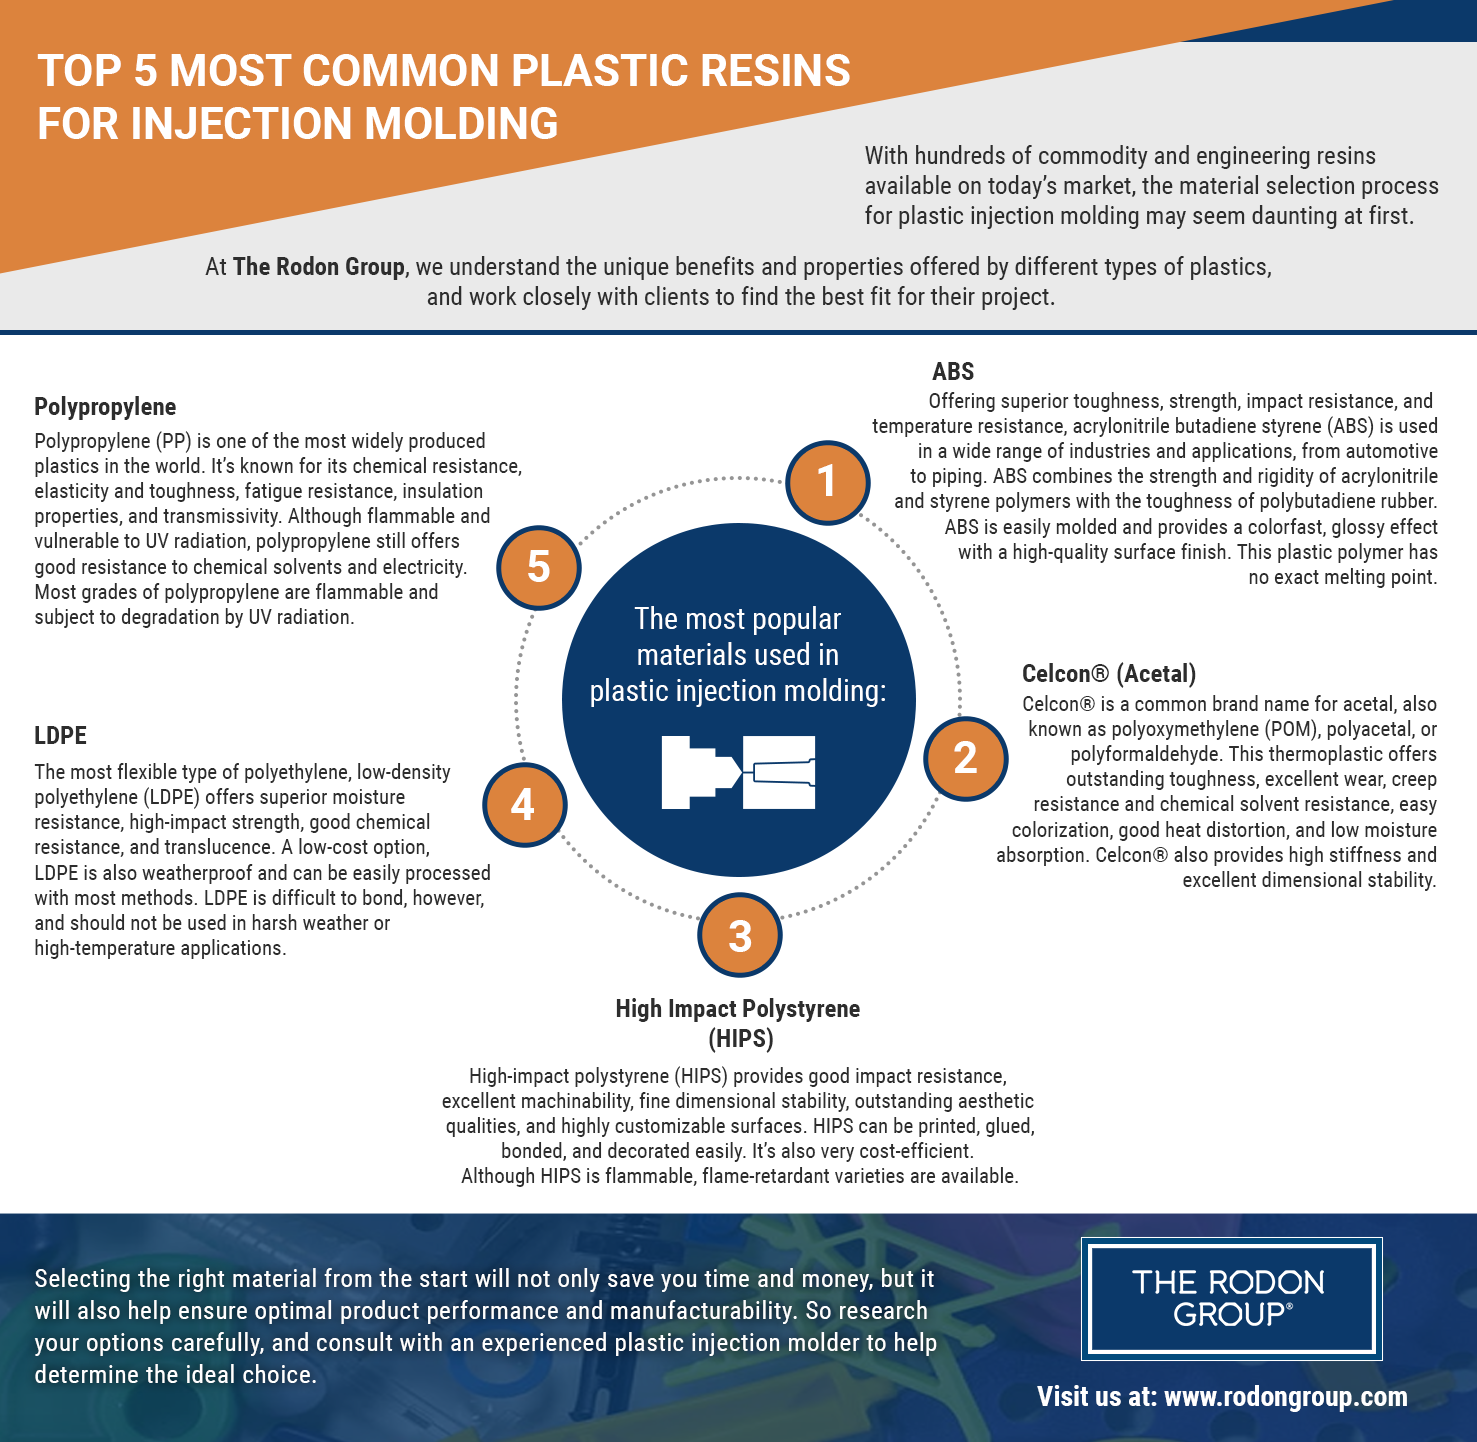 top 5 most common plastic resins for injection molding infographic